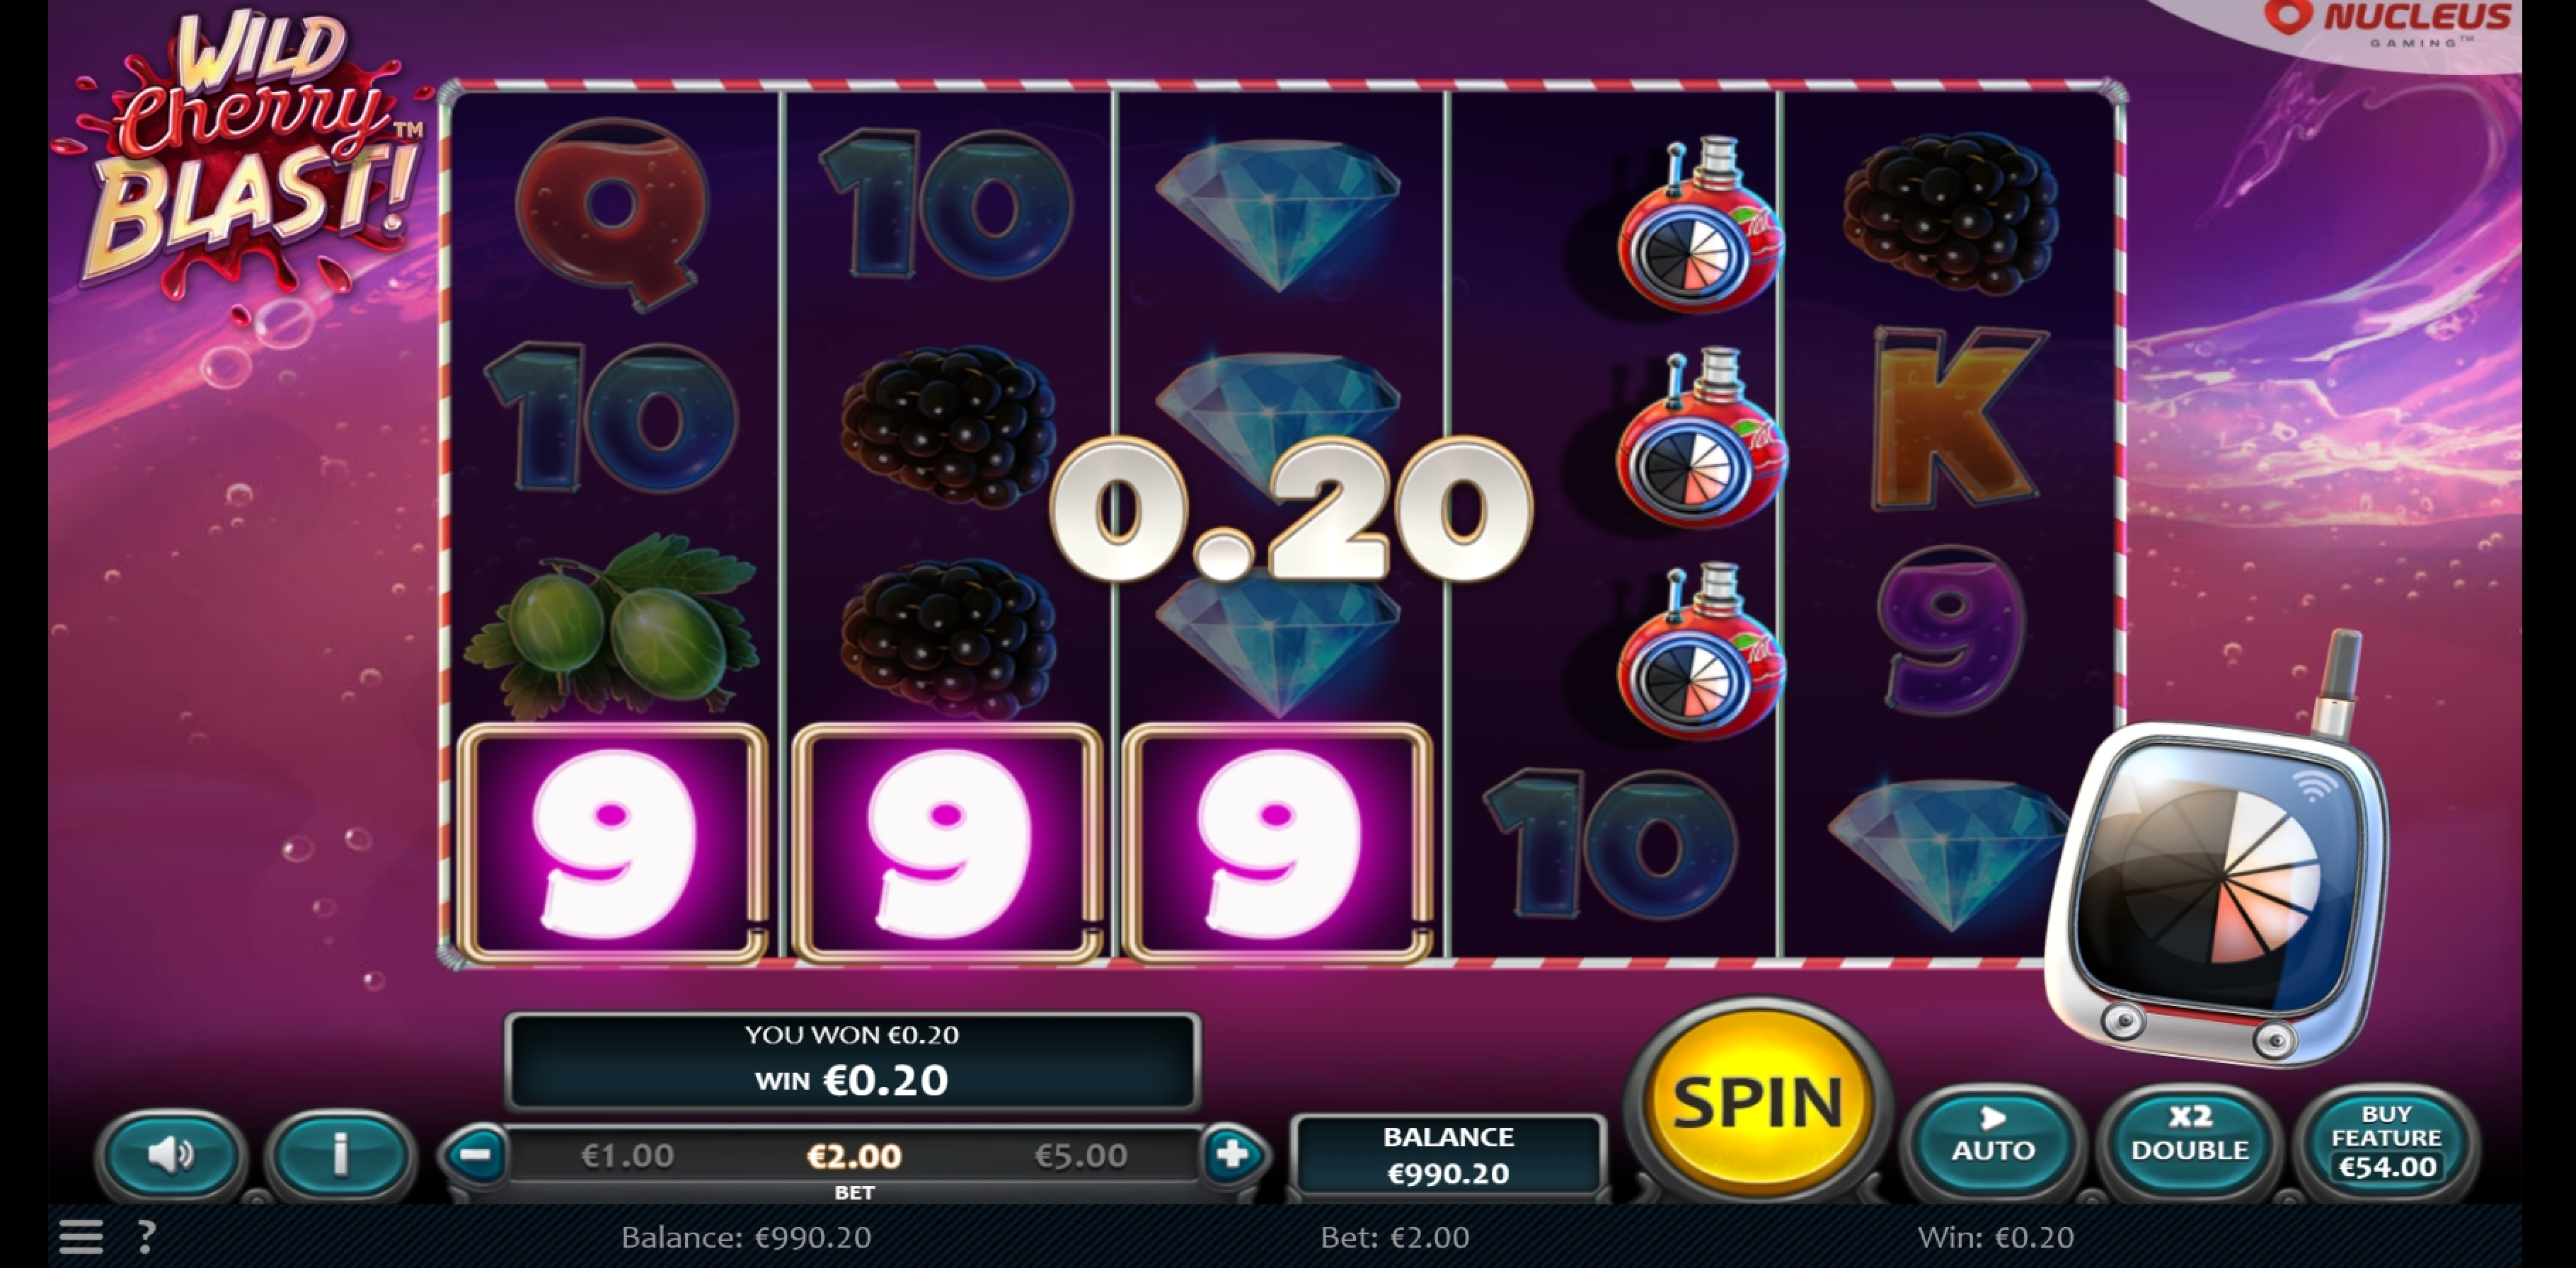 Win Money in Wild Cherry Blast Free Slot Game by Nucleus Gaming